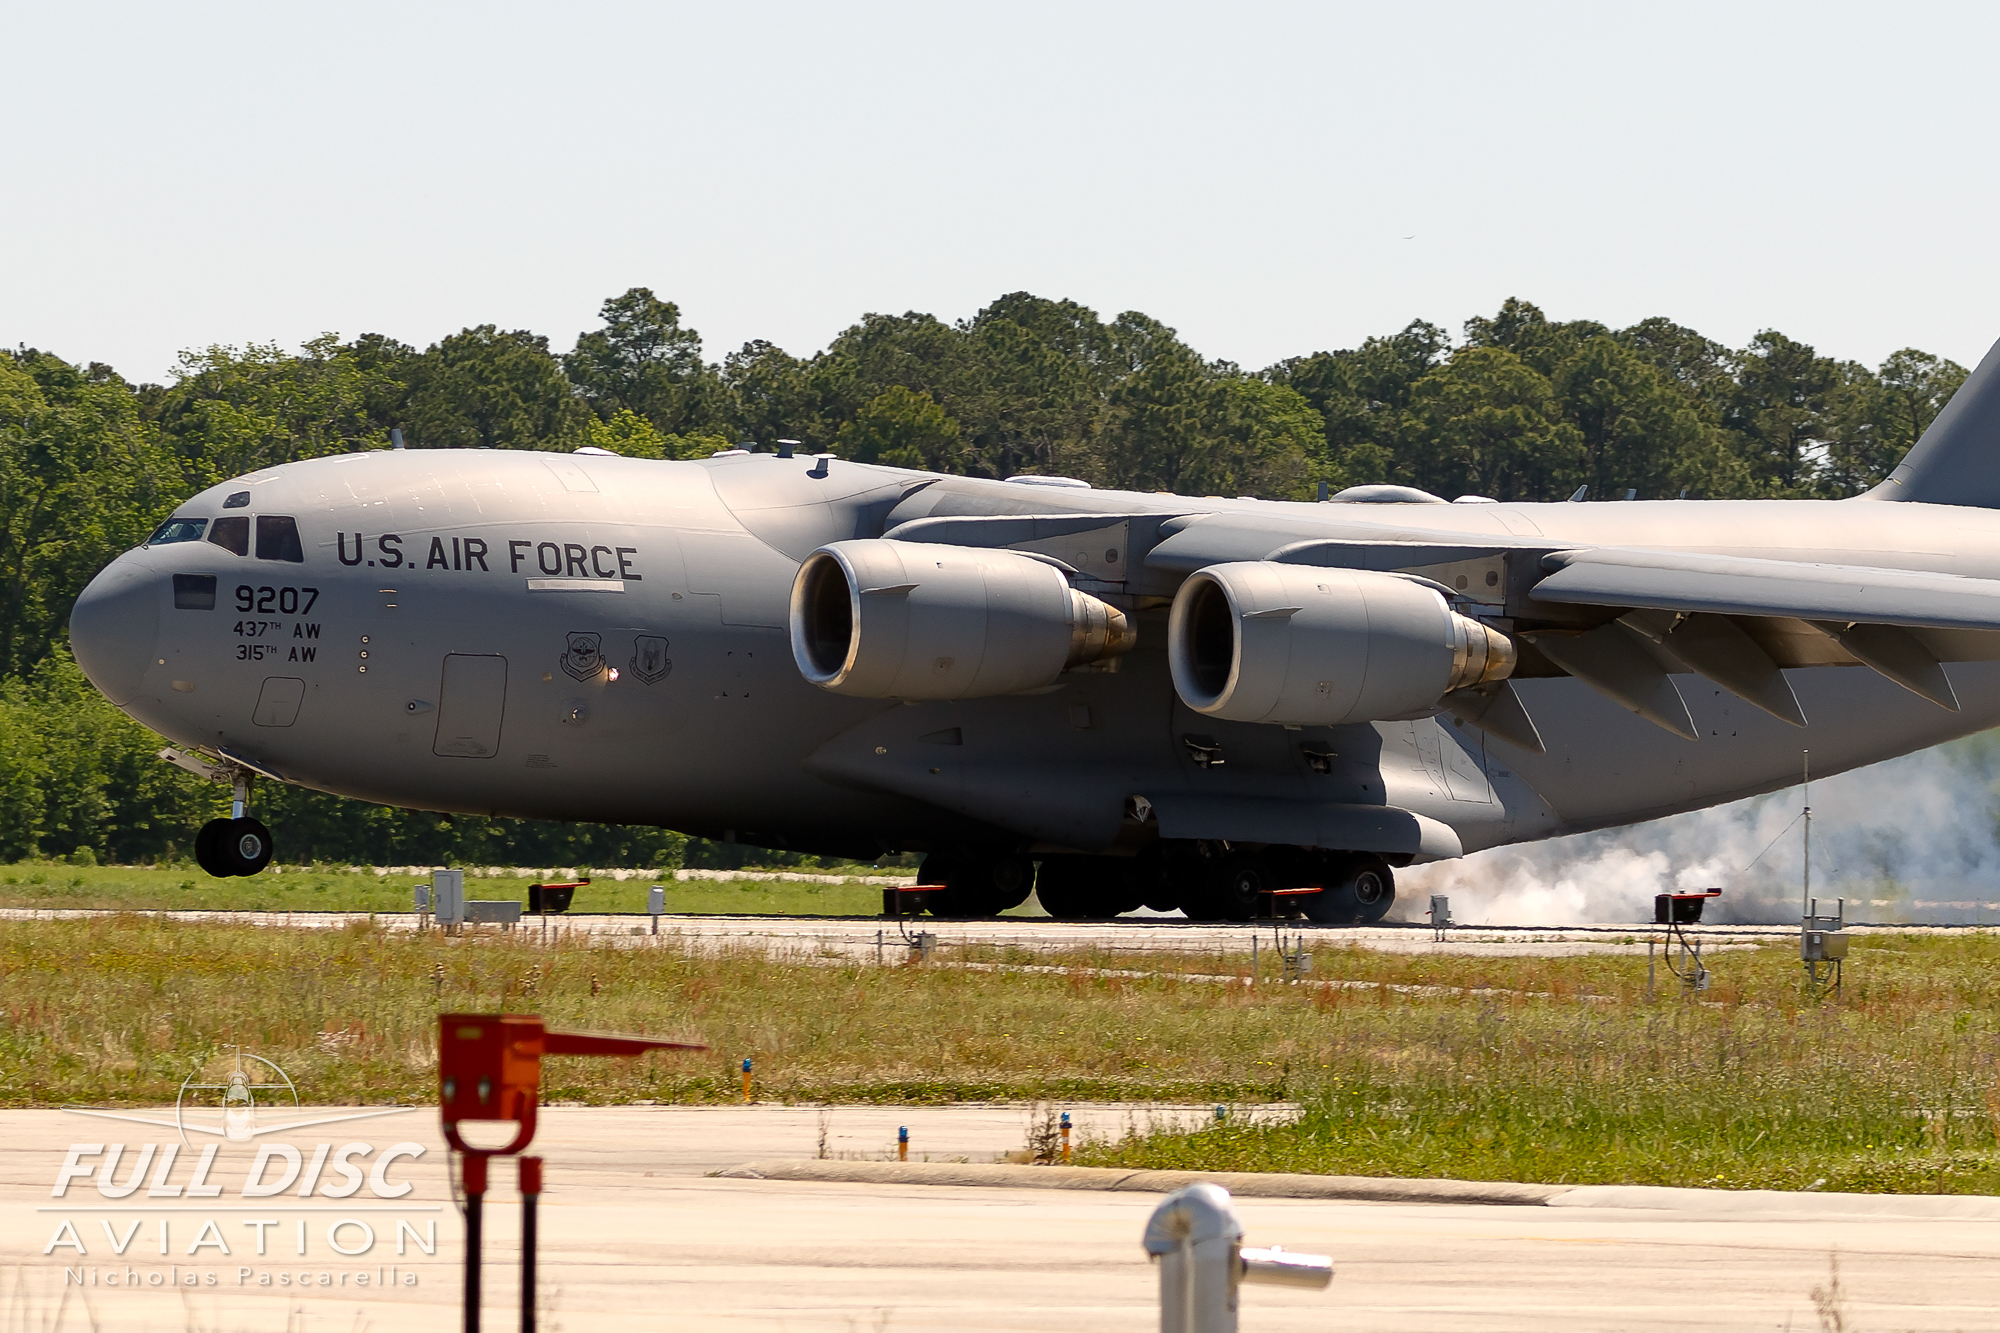 c17_landing_wingsoverwayne_sjafbnicholaspascarella_fulldiscavation_aviation_airshow.jpg